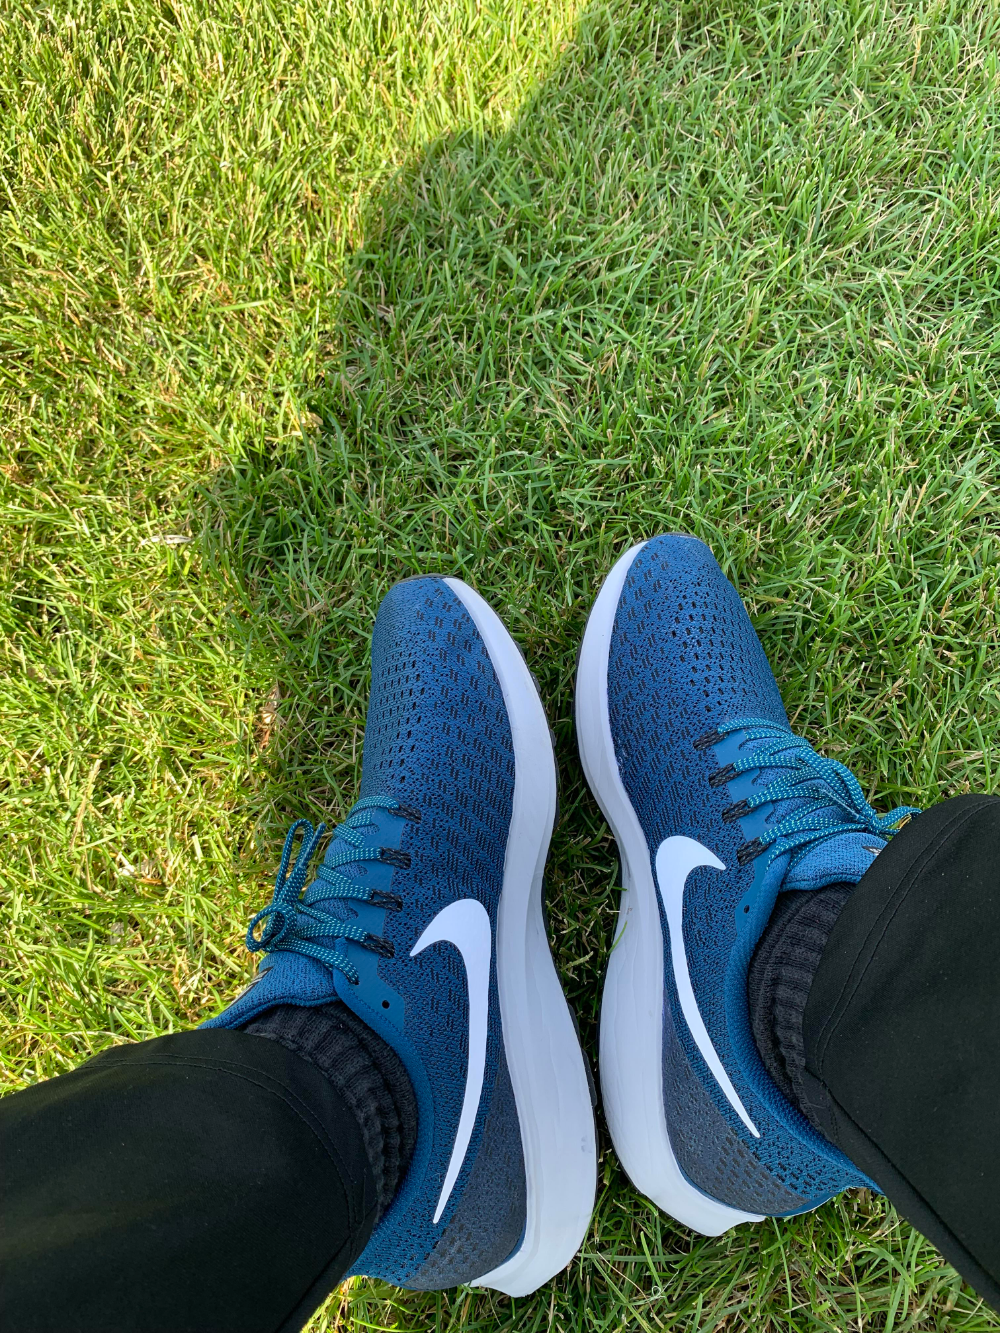 Athletic shoes, Sneakers nike, Shoes